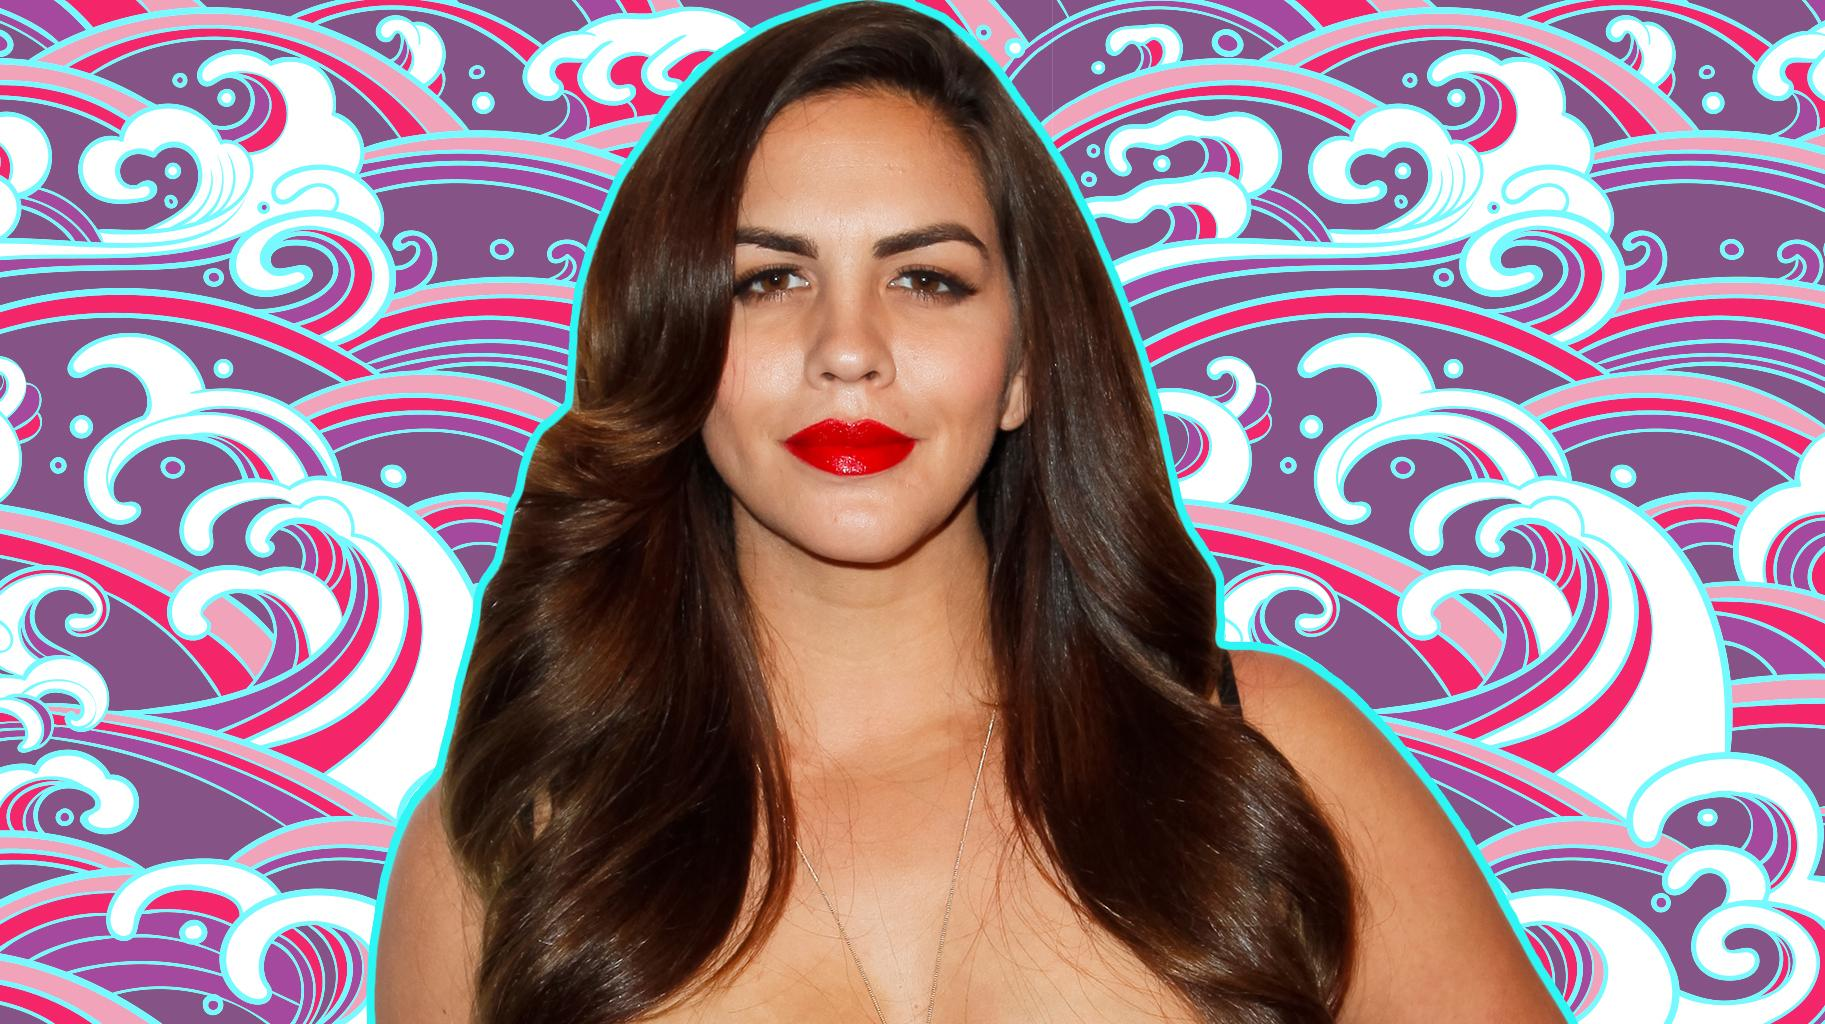 Vicious Internet Trolls Are Attacking Katie Maloney Of 'Vanderpump Rules' -- Tom Schwartz Forced To Step In